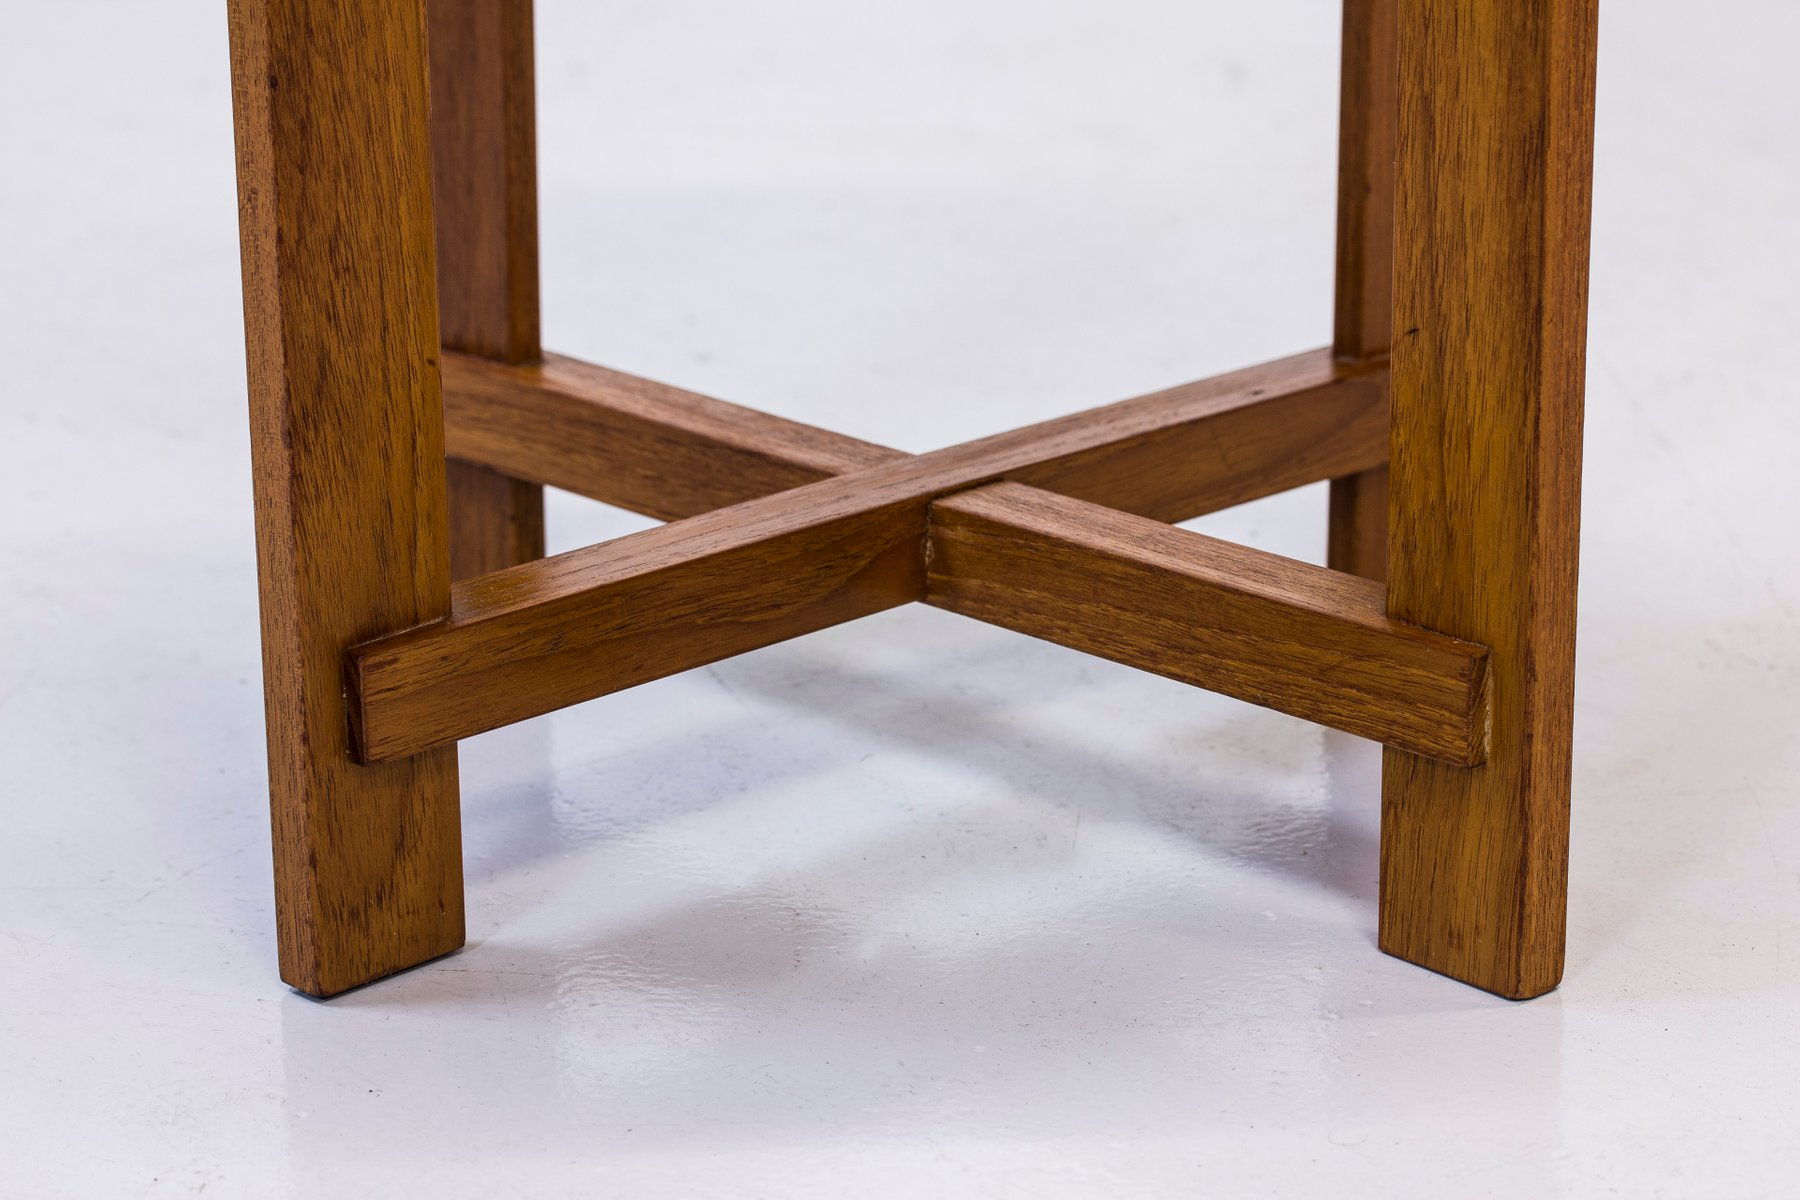 Teak Stool by Uno & Östen Kristiansson for Luxus, 1960s for sale at ...